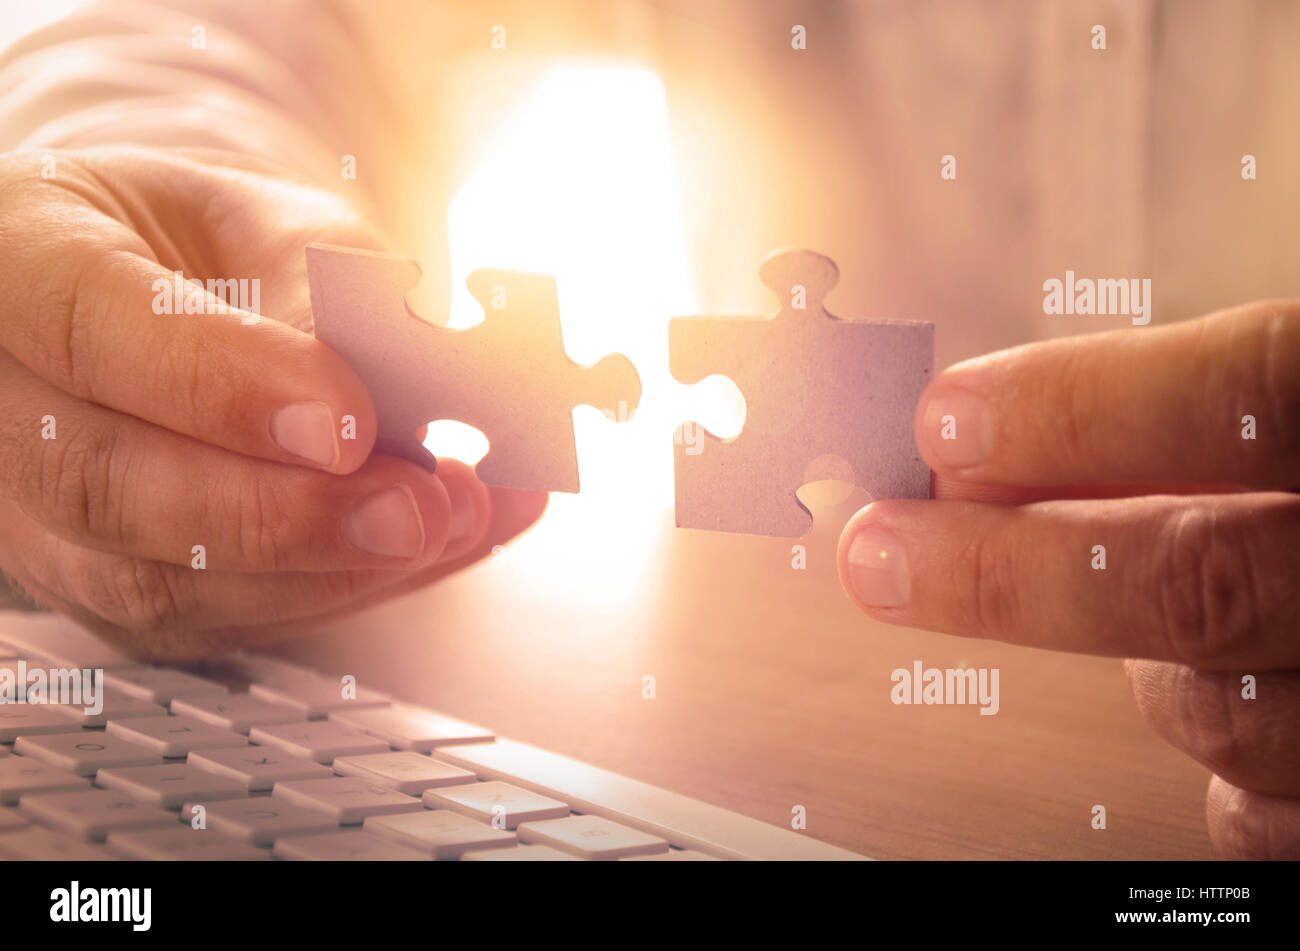 Closeup of man's hands holding puzzle pieces - Stock Image